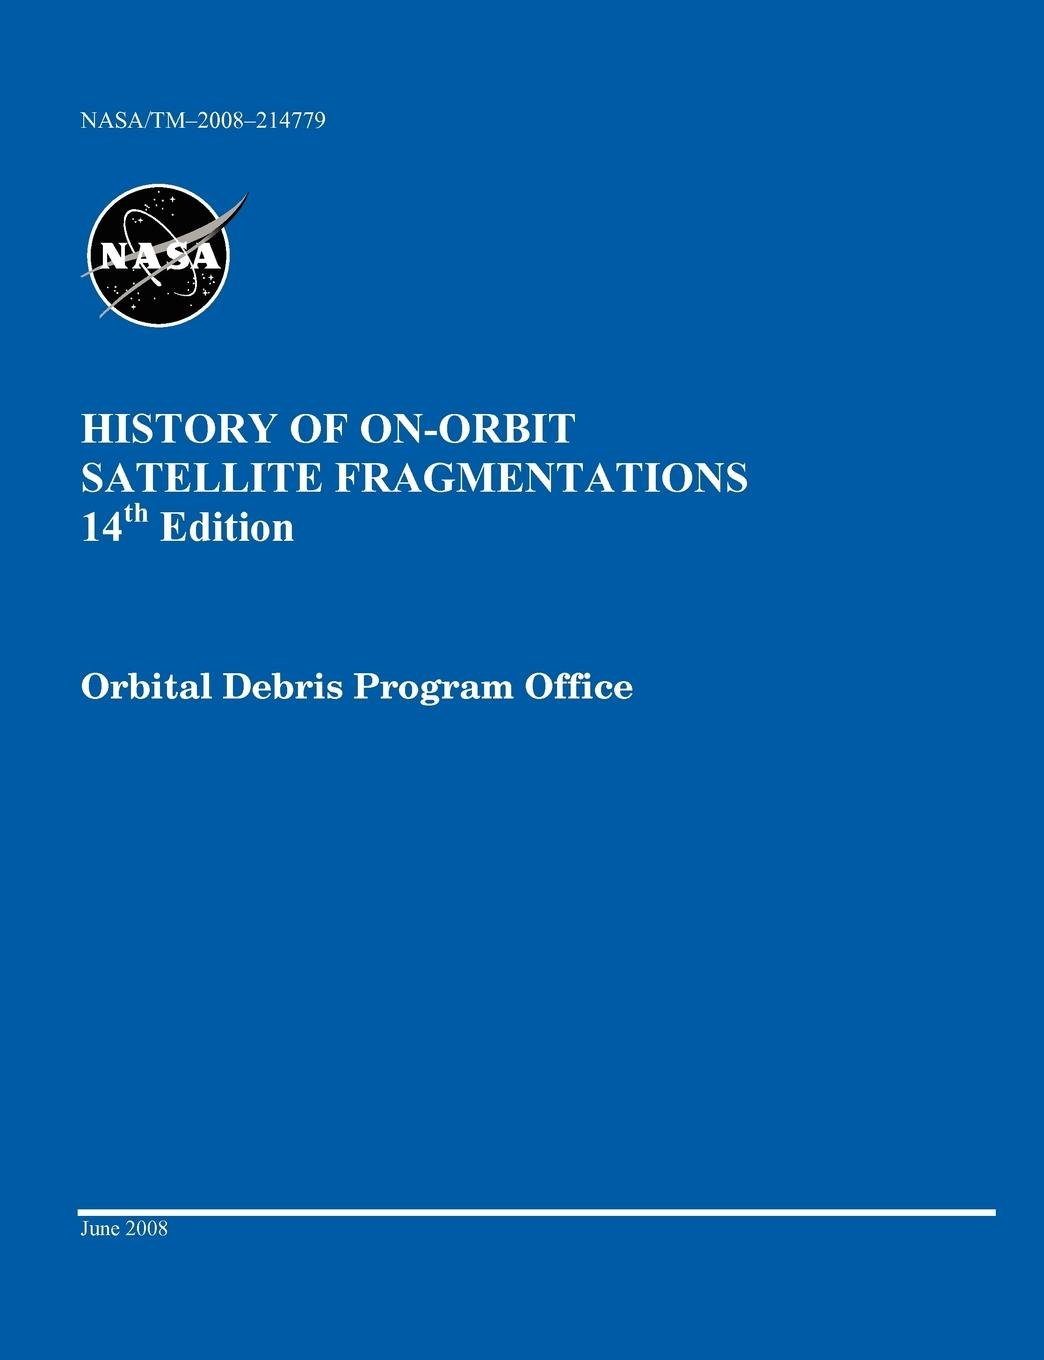 History of On-orbit Satellite Fragmentations (14th edition) PDF